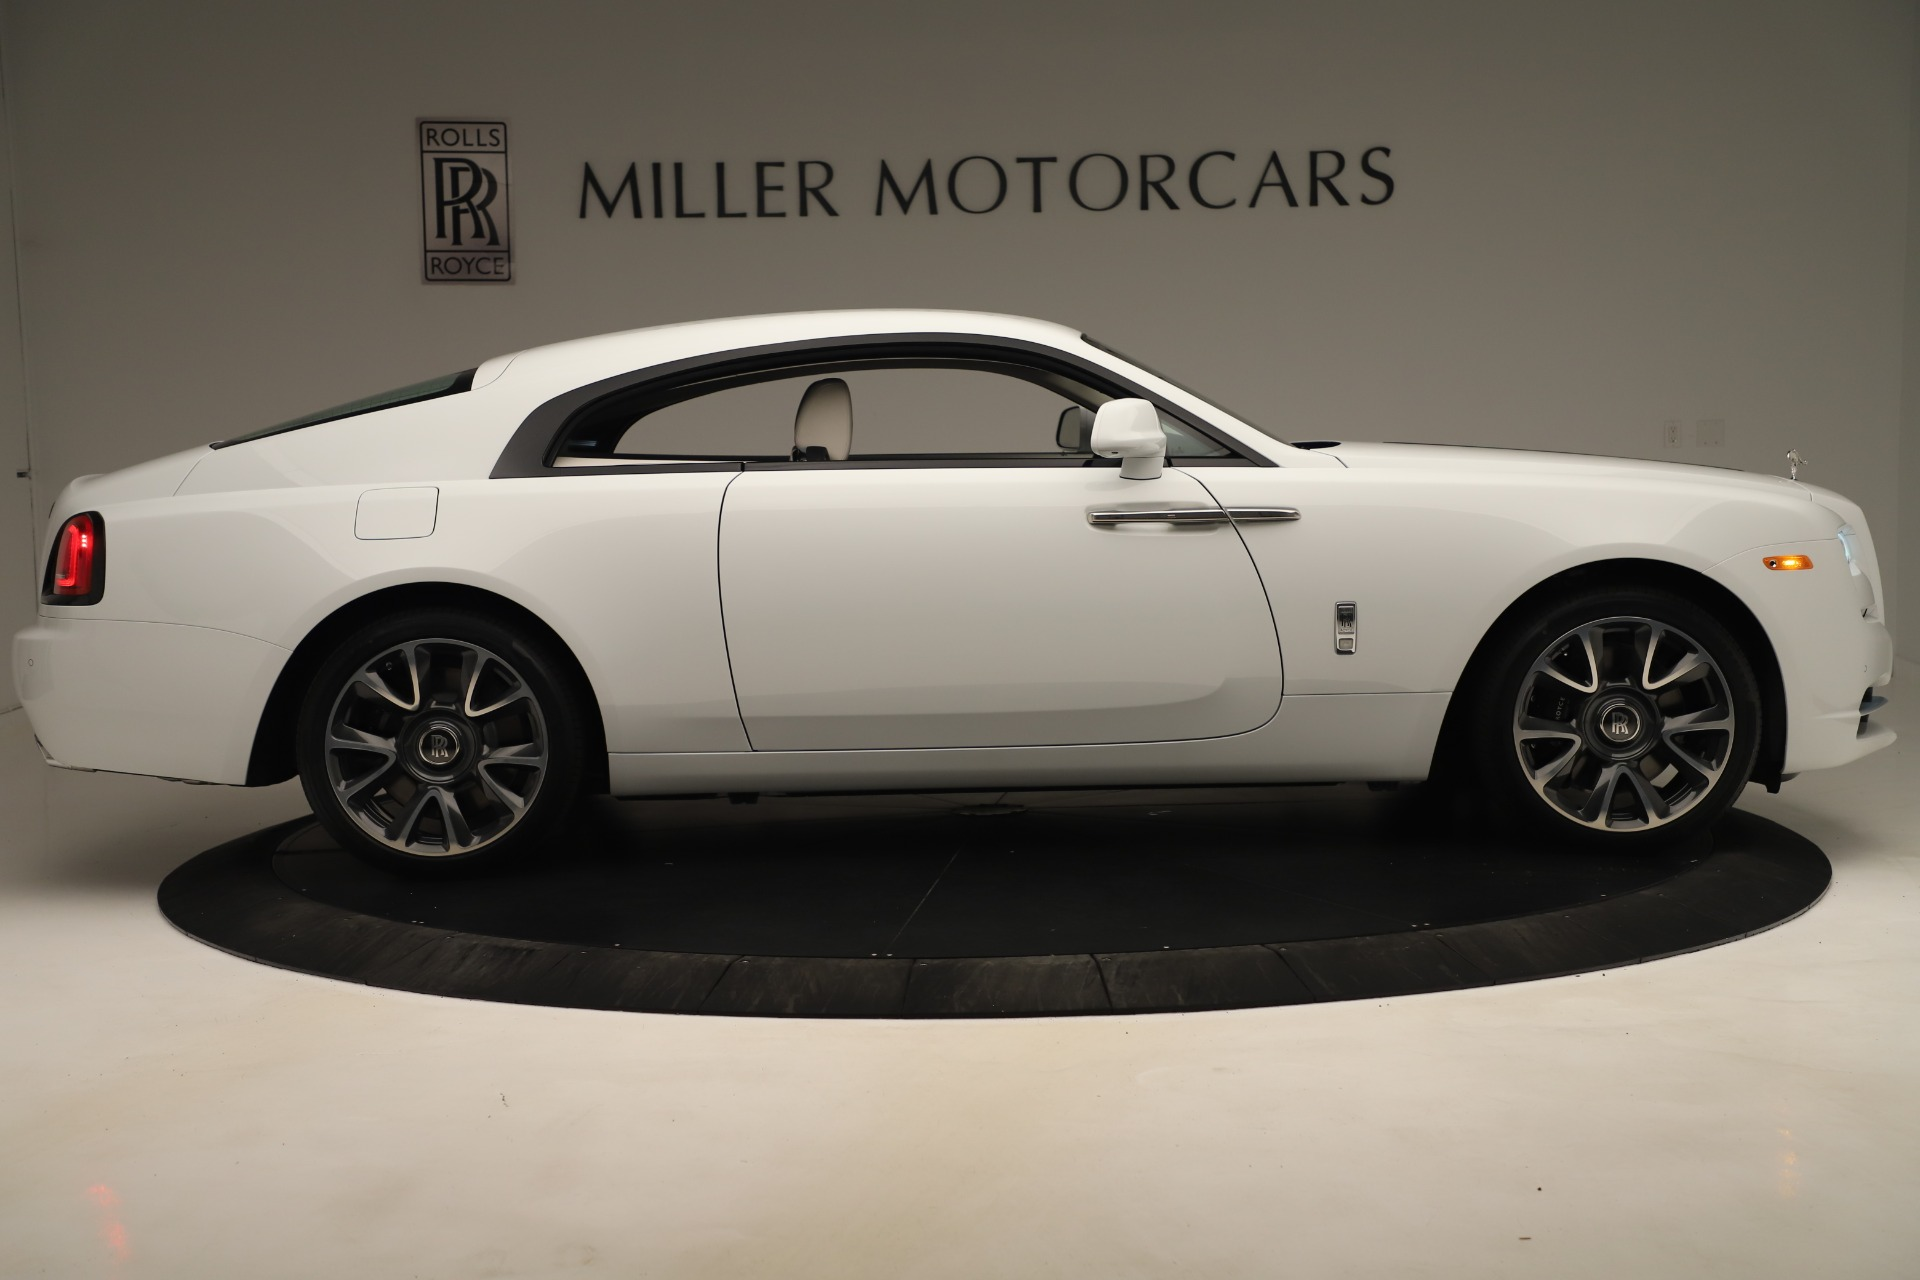 New 2019 Rolls-Royce Wraith  For Sale 391000 In Greenwich, CT